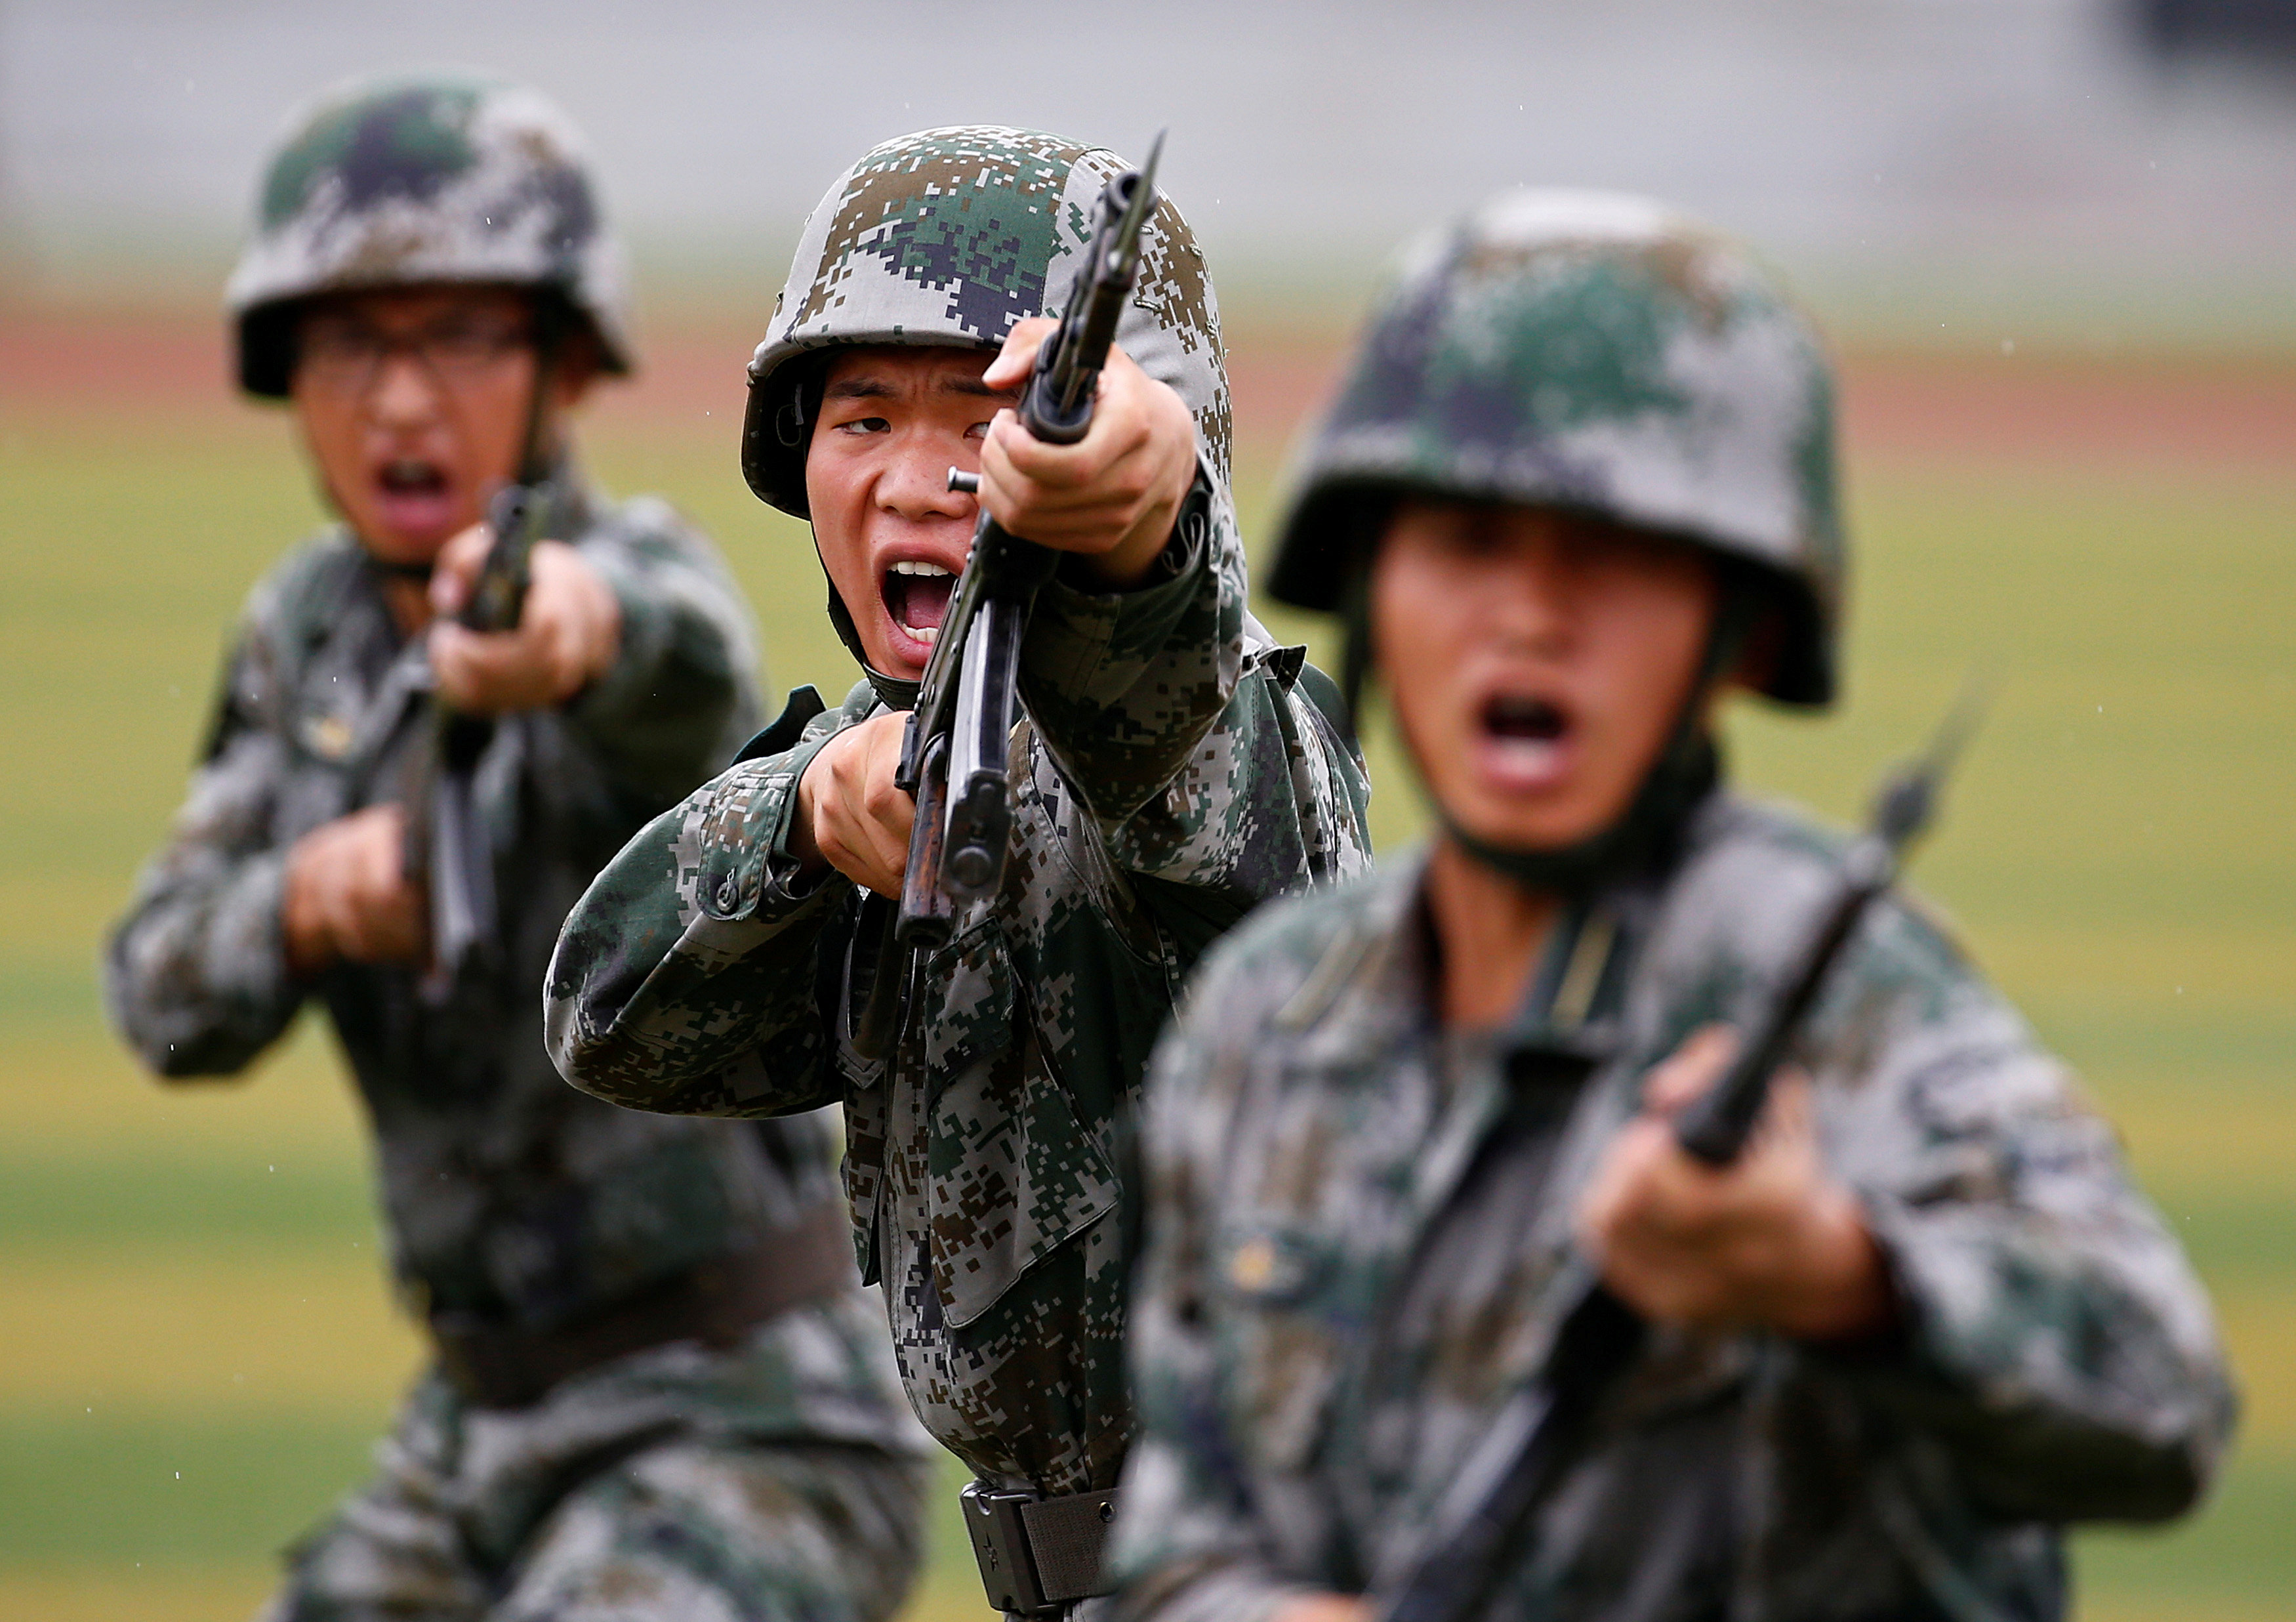 Taiwan says Chinese military threat grows